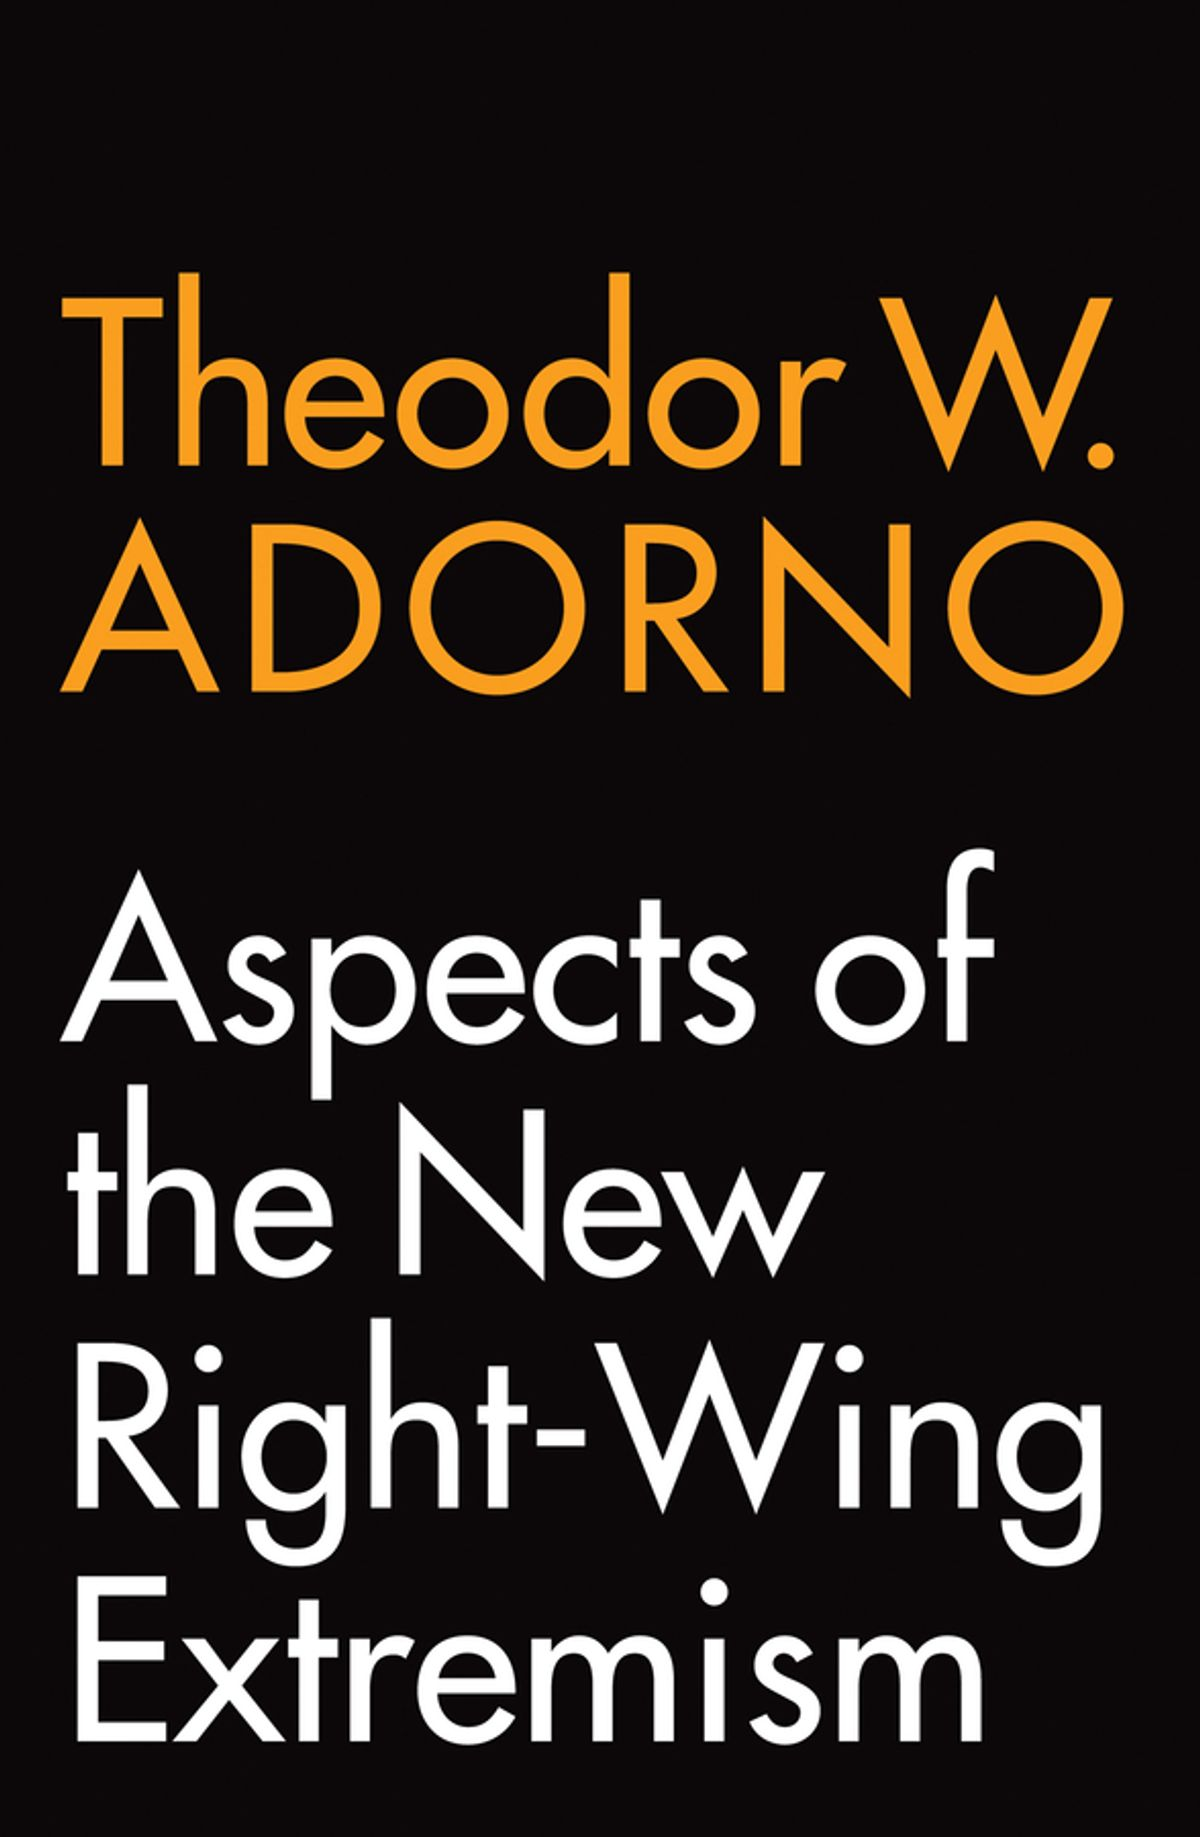 aspects-of-the-new-right-wing-extremism.